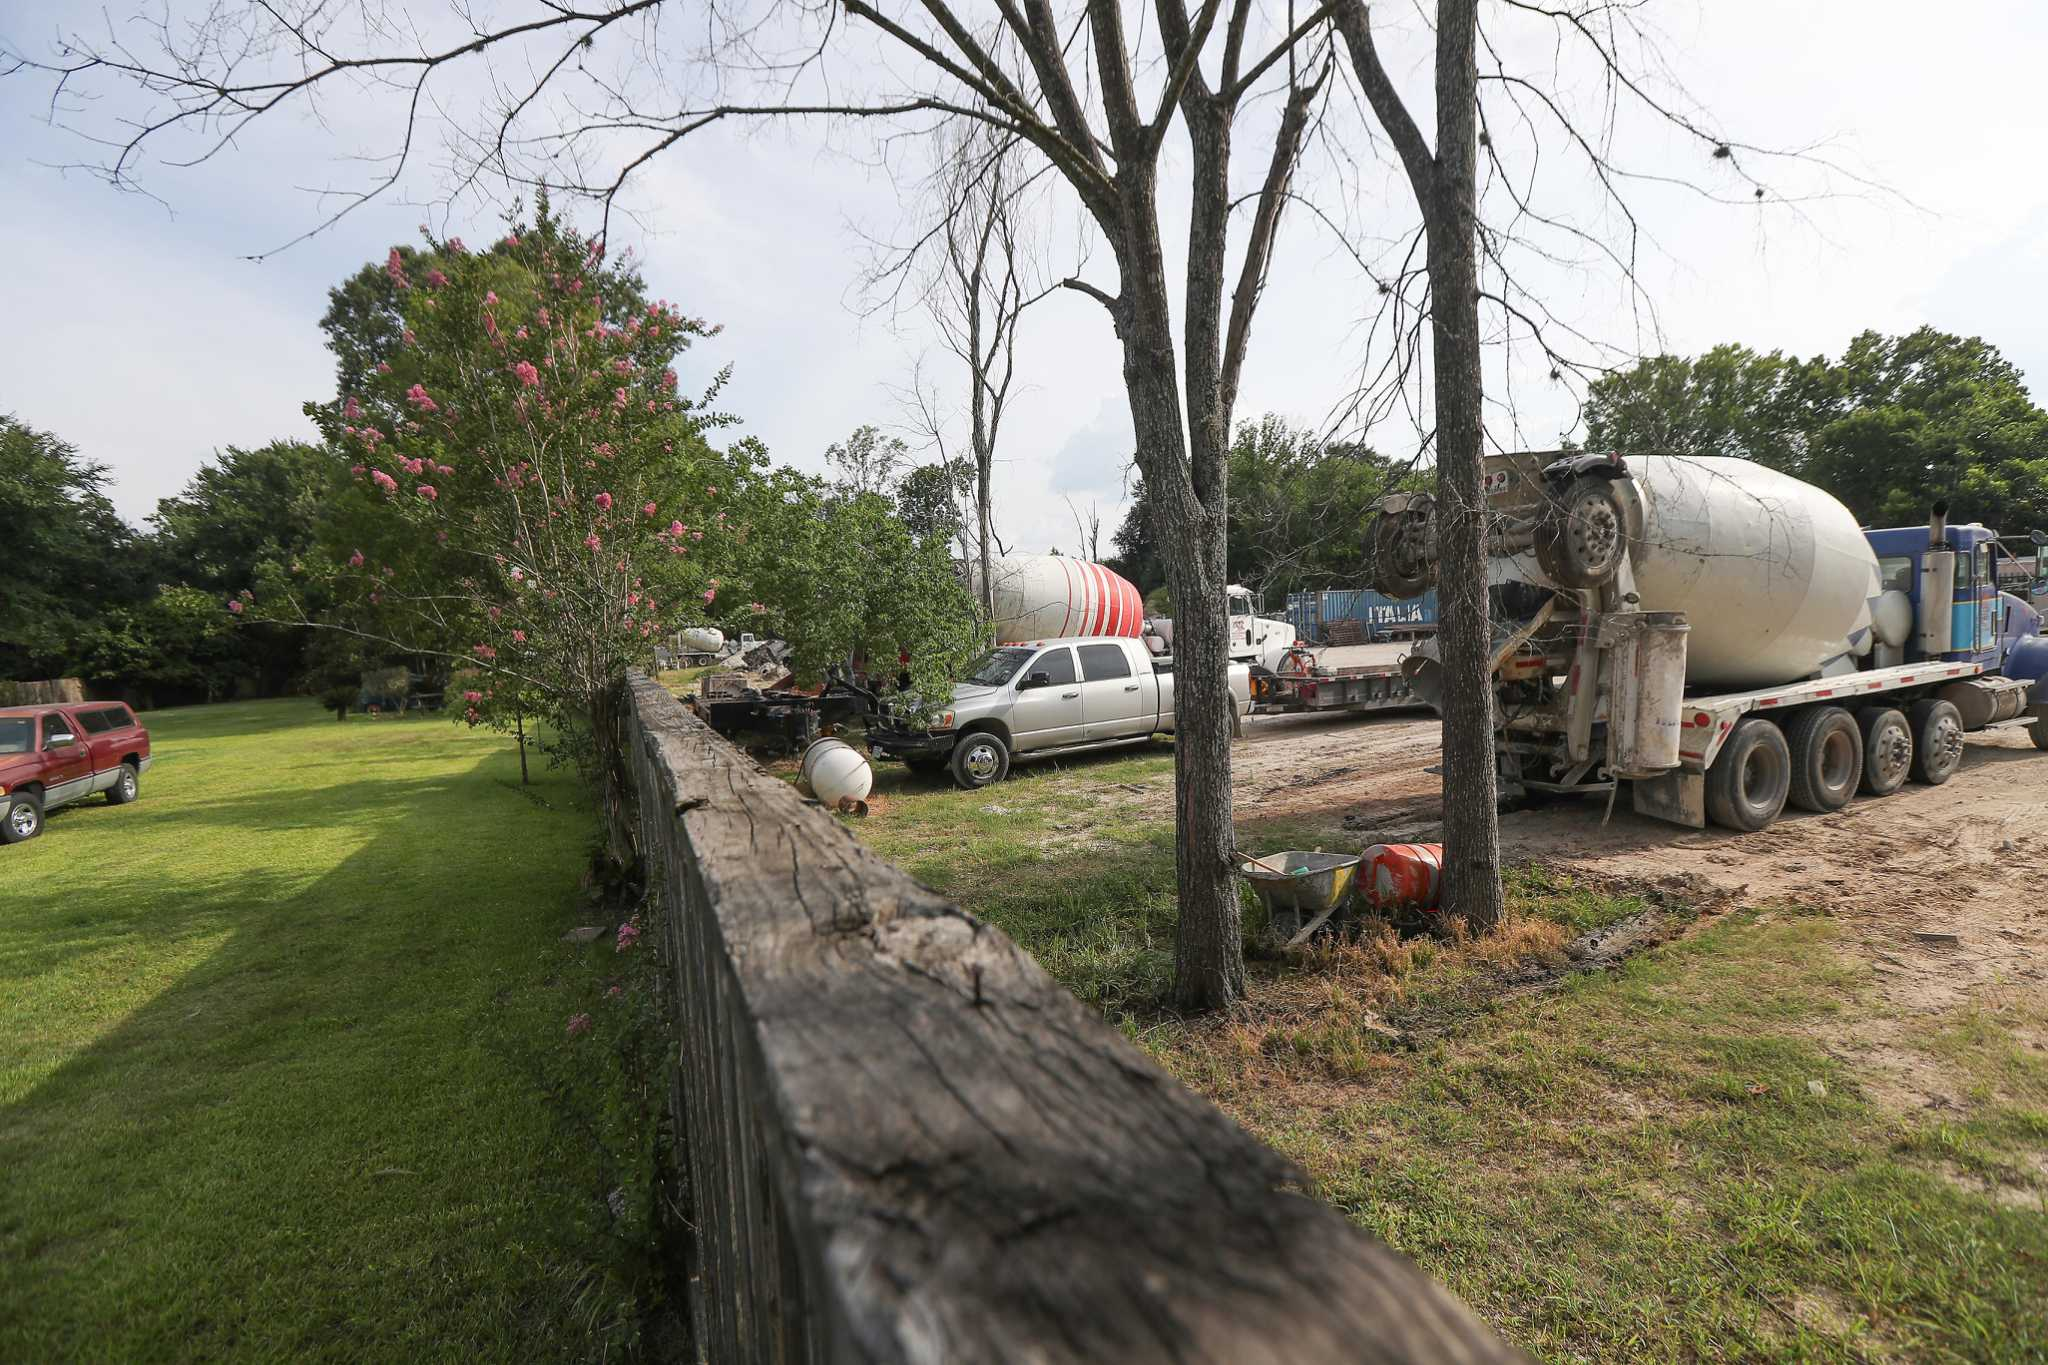 Concrete company, after scrapping Acres Home batch plant project, to move out of neighborhood